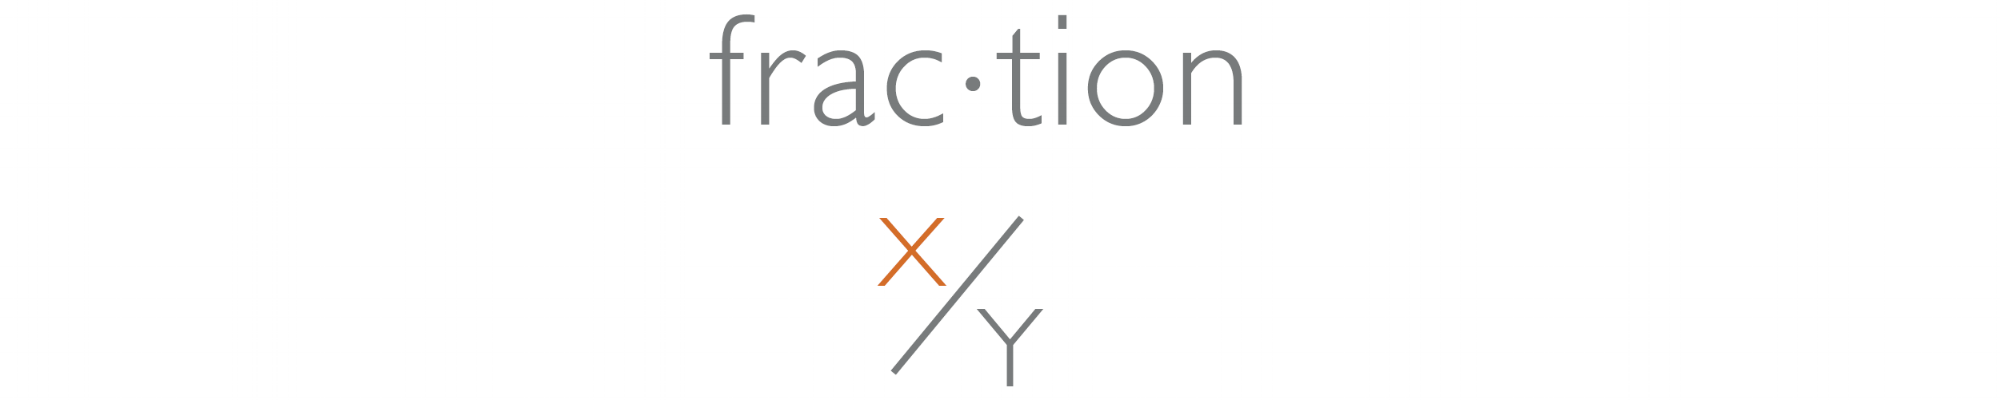 fraction LOGO.png